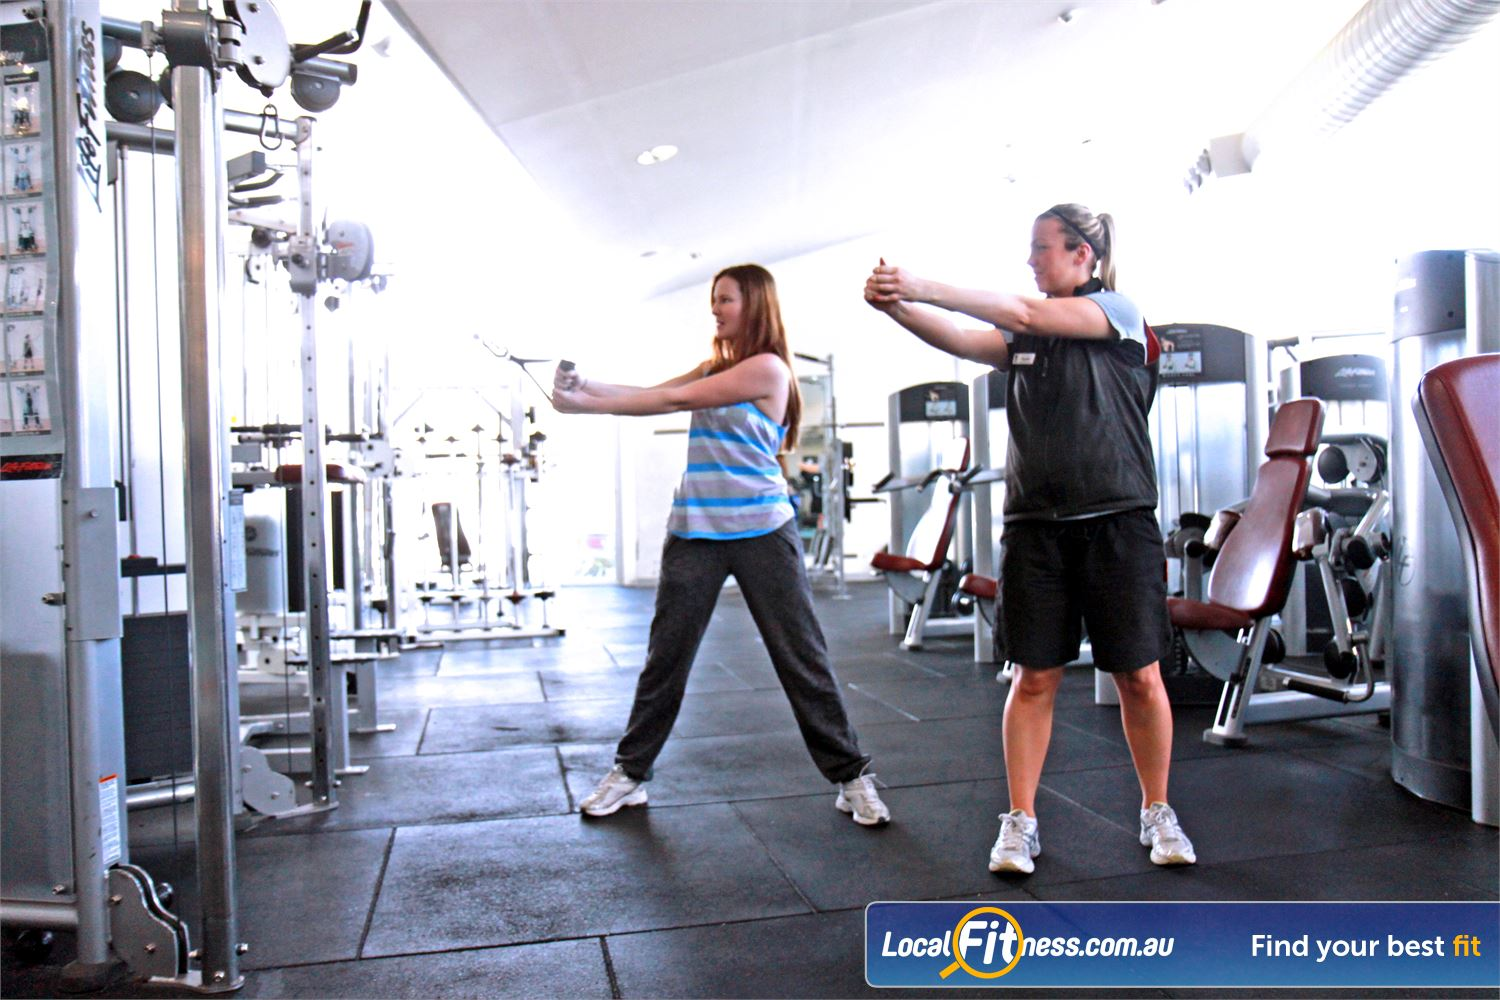 Ascot Vale Leisure Centre Ascot Vale Fully qualified Ascot Vale gym staff can tailor a women's fitness program for you.